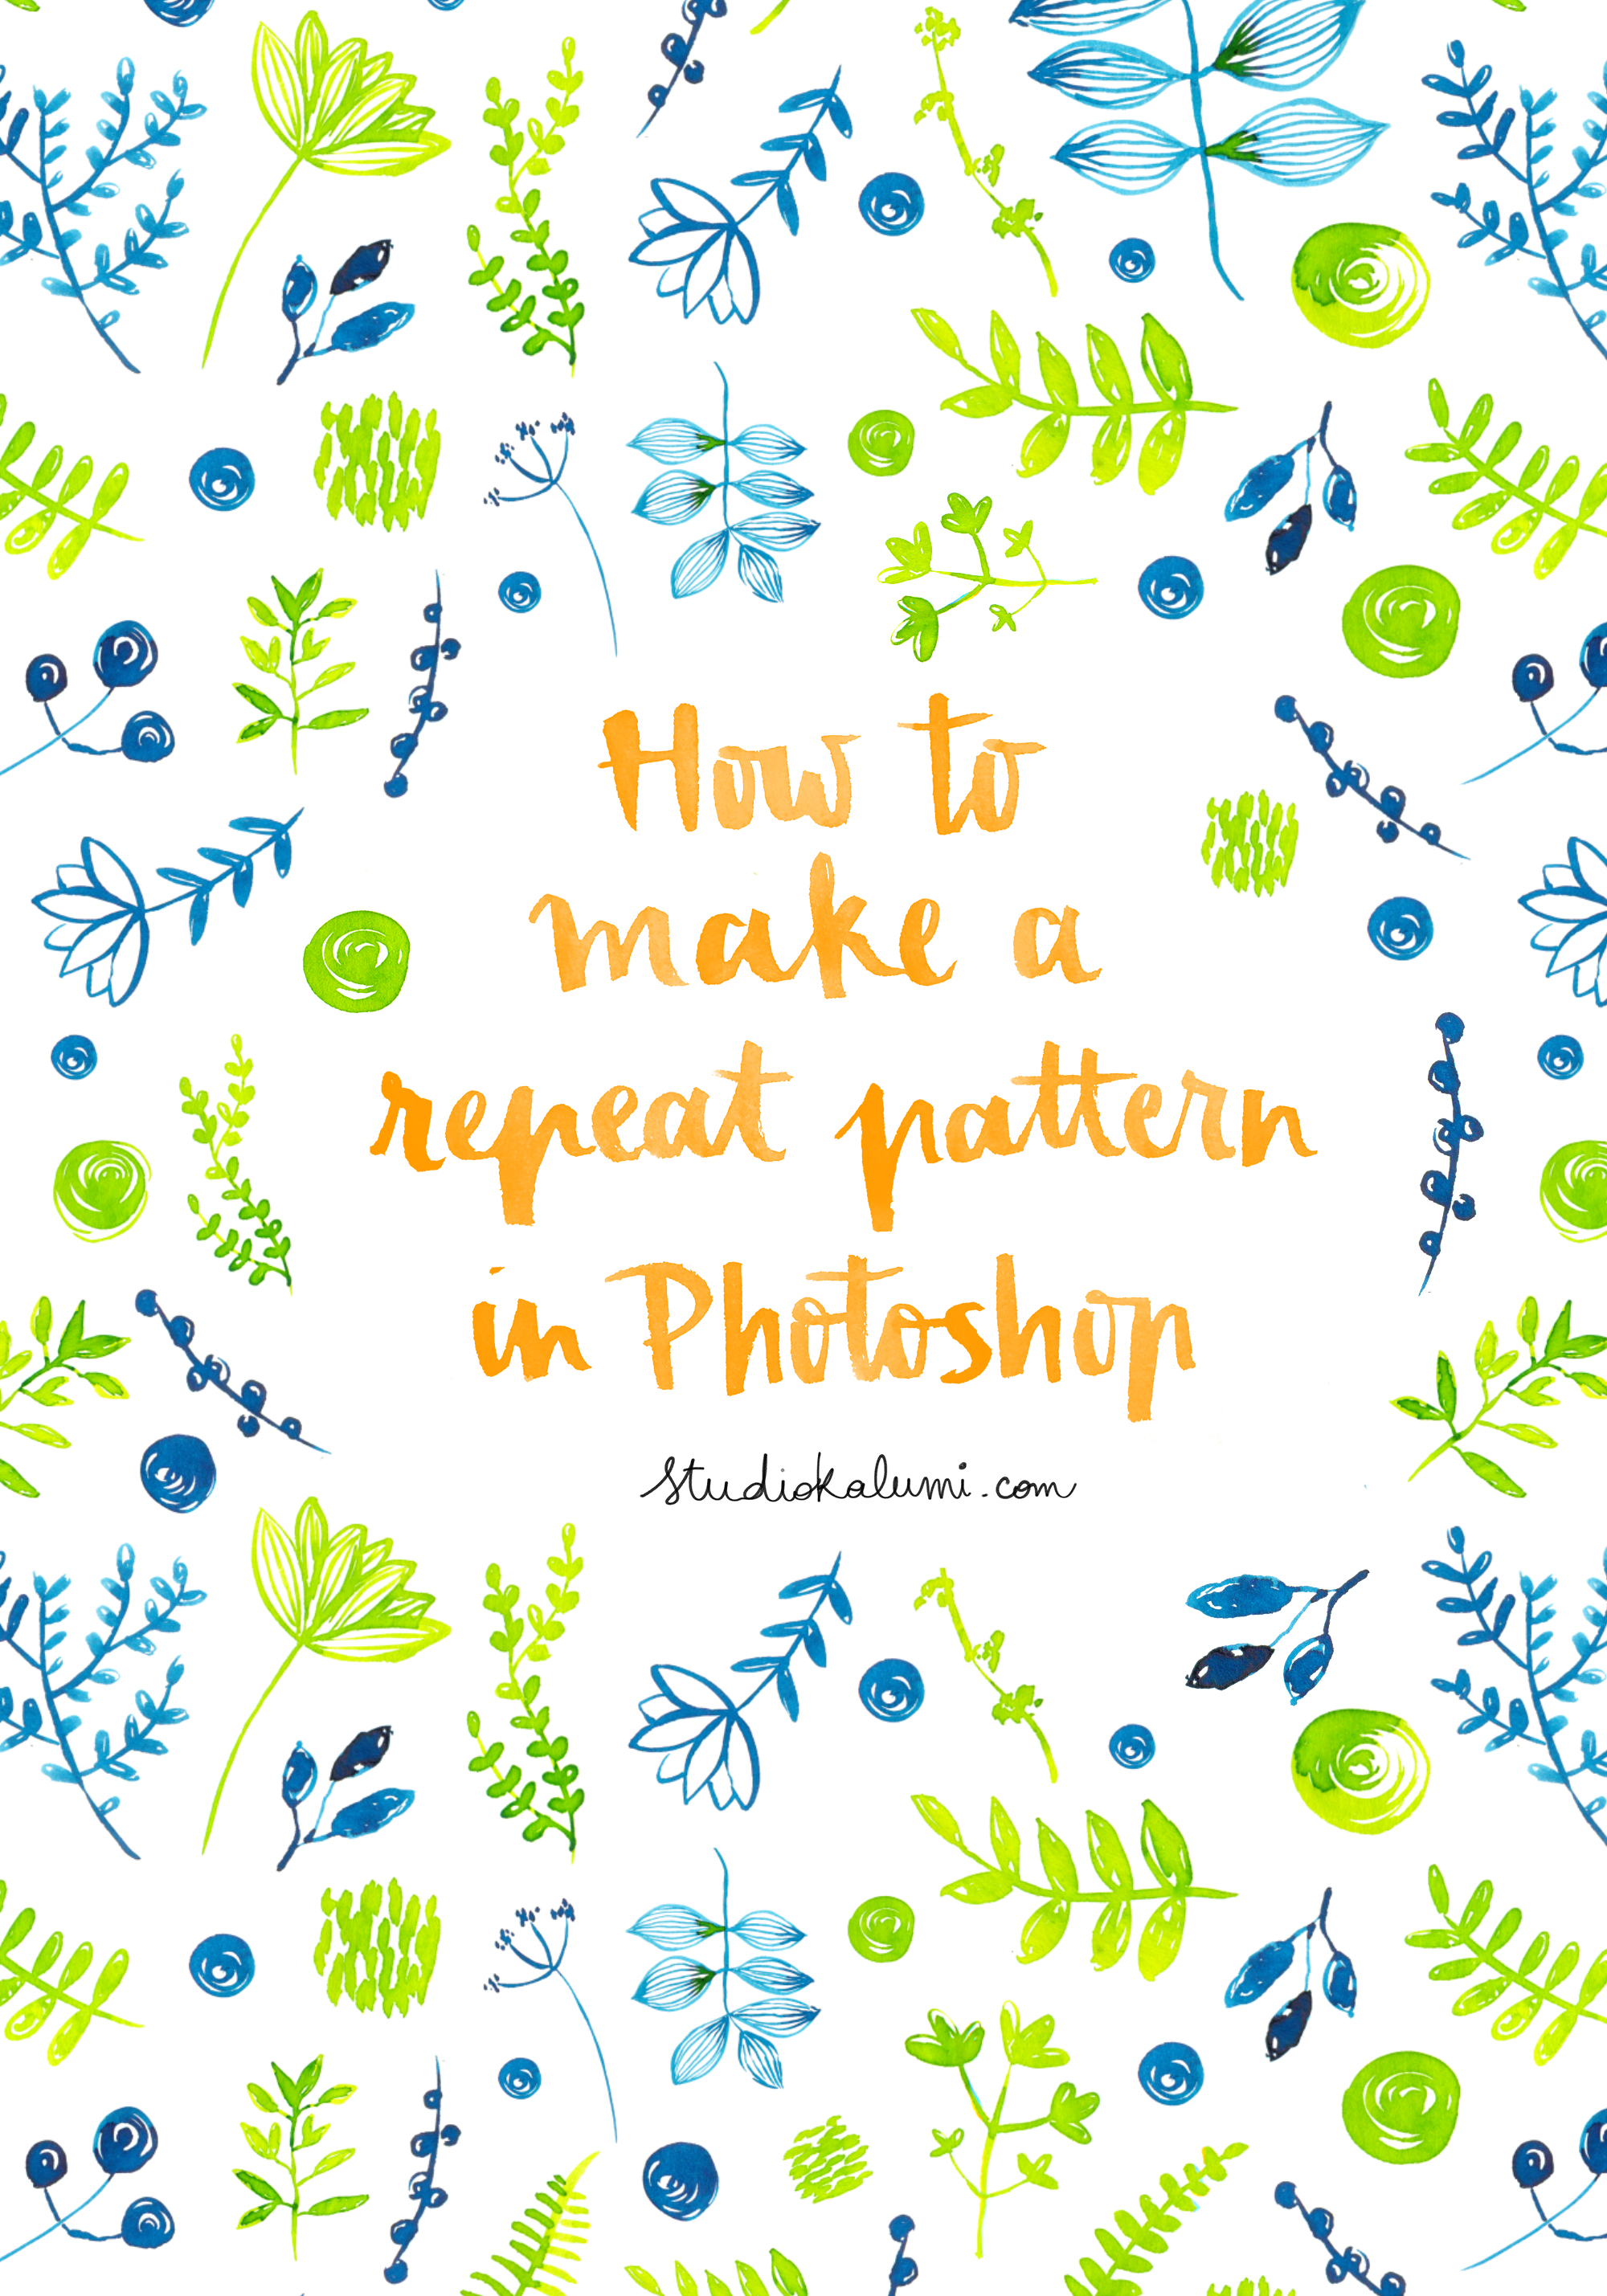 Tutorial 2 How To Make A Repeat Pattern In Photoshop